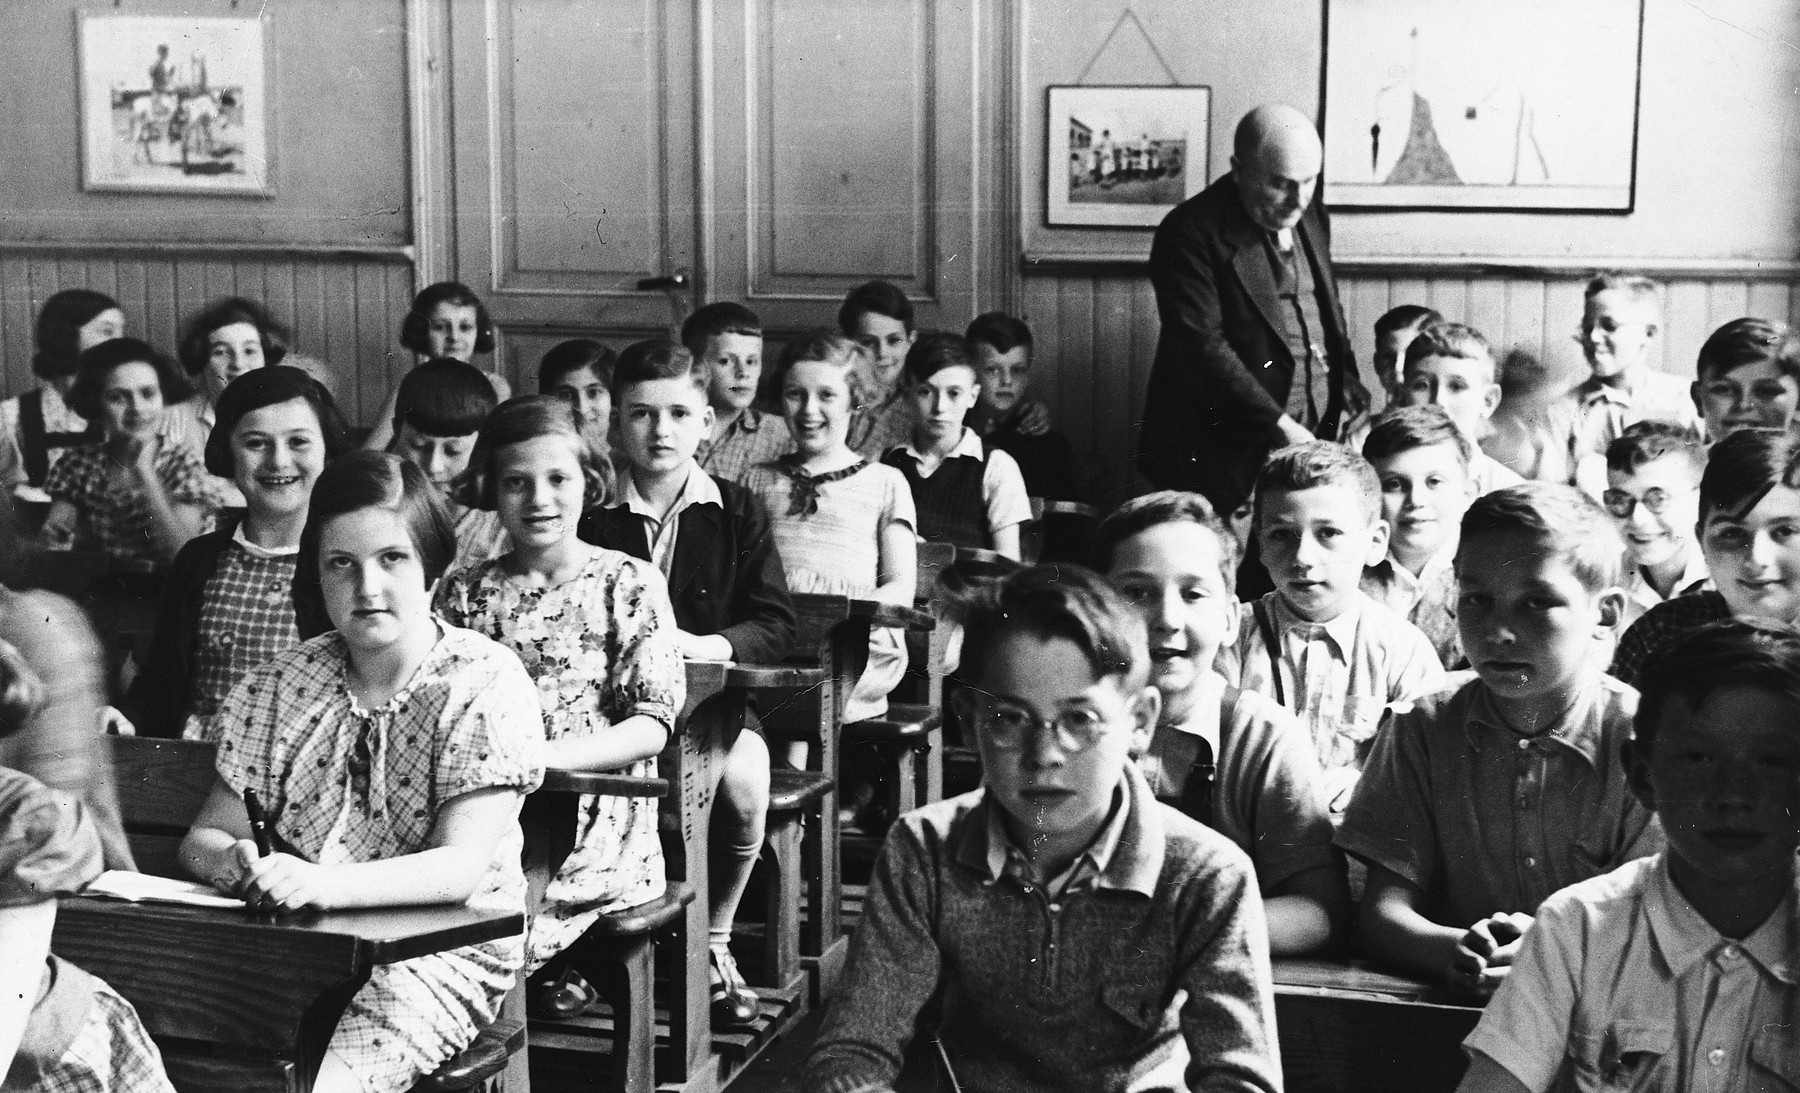 Elementary school students sit at their desks in a classroom in Kassel, Germany.  This photograph was sent to Bertha Meyer while she was on a Kindertransport in Holland by a former classmate from Bertha's school in Kassel, Germany.